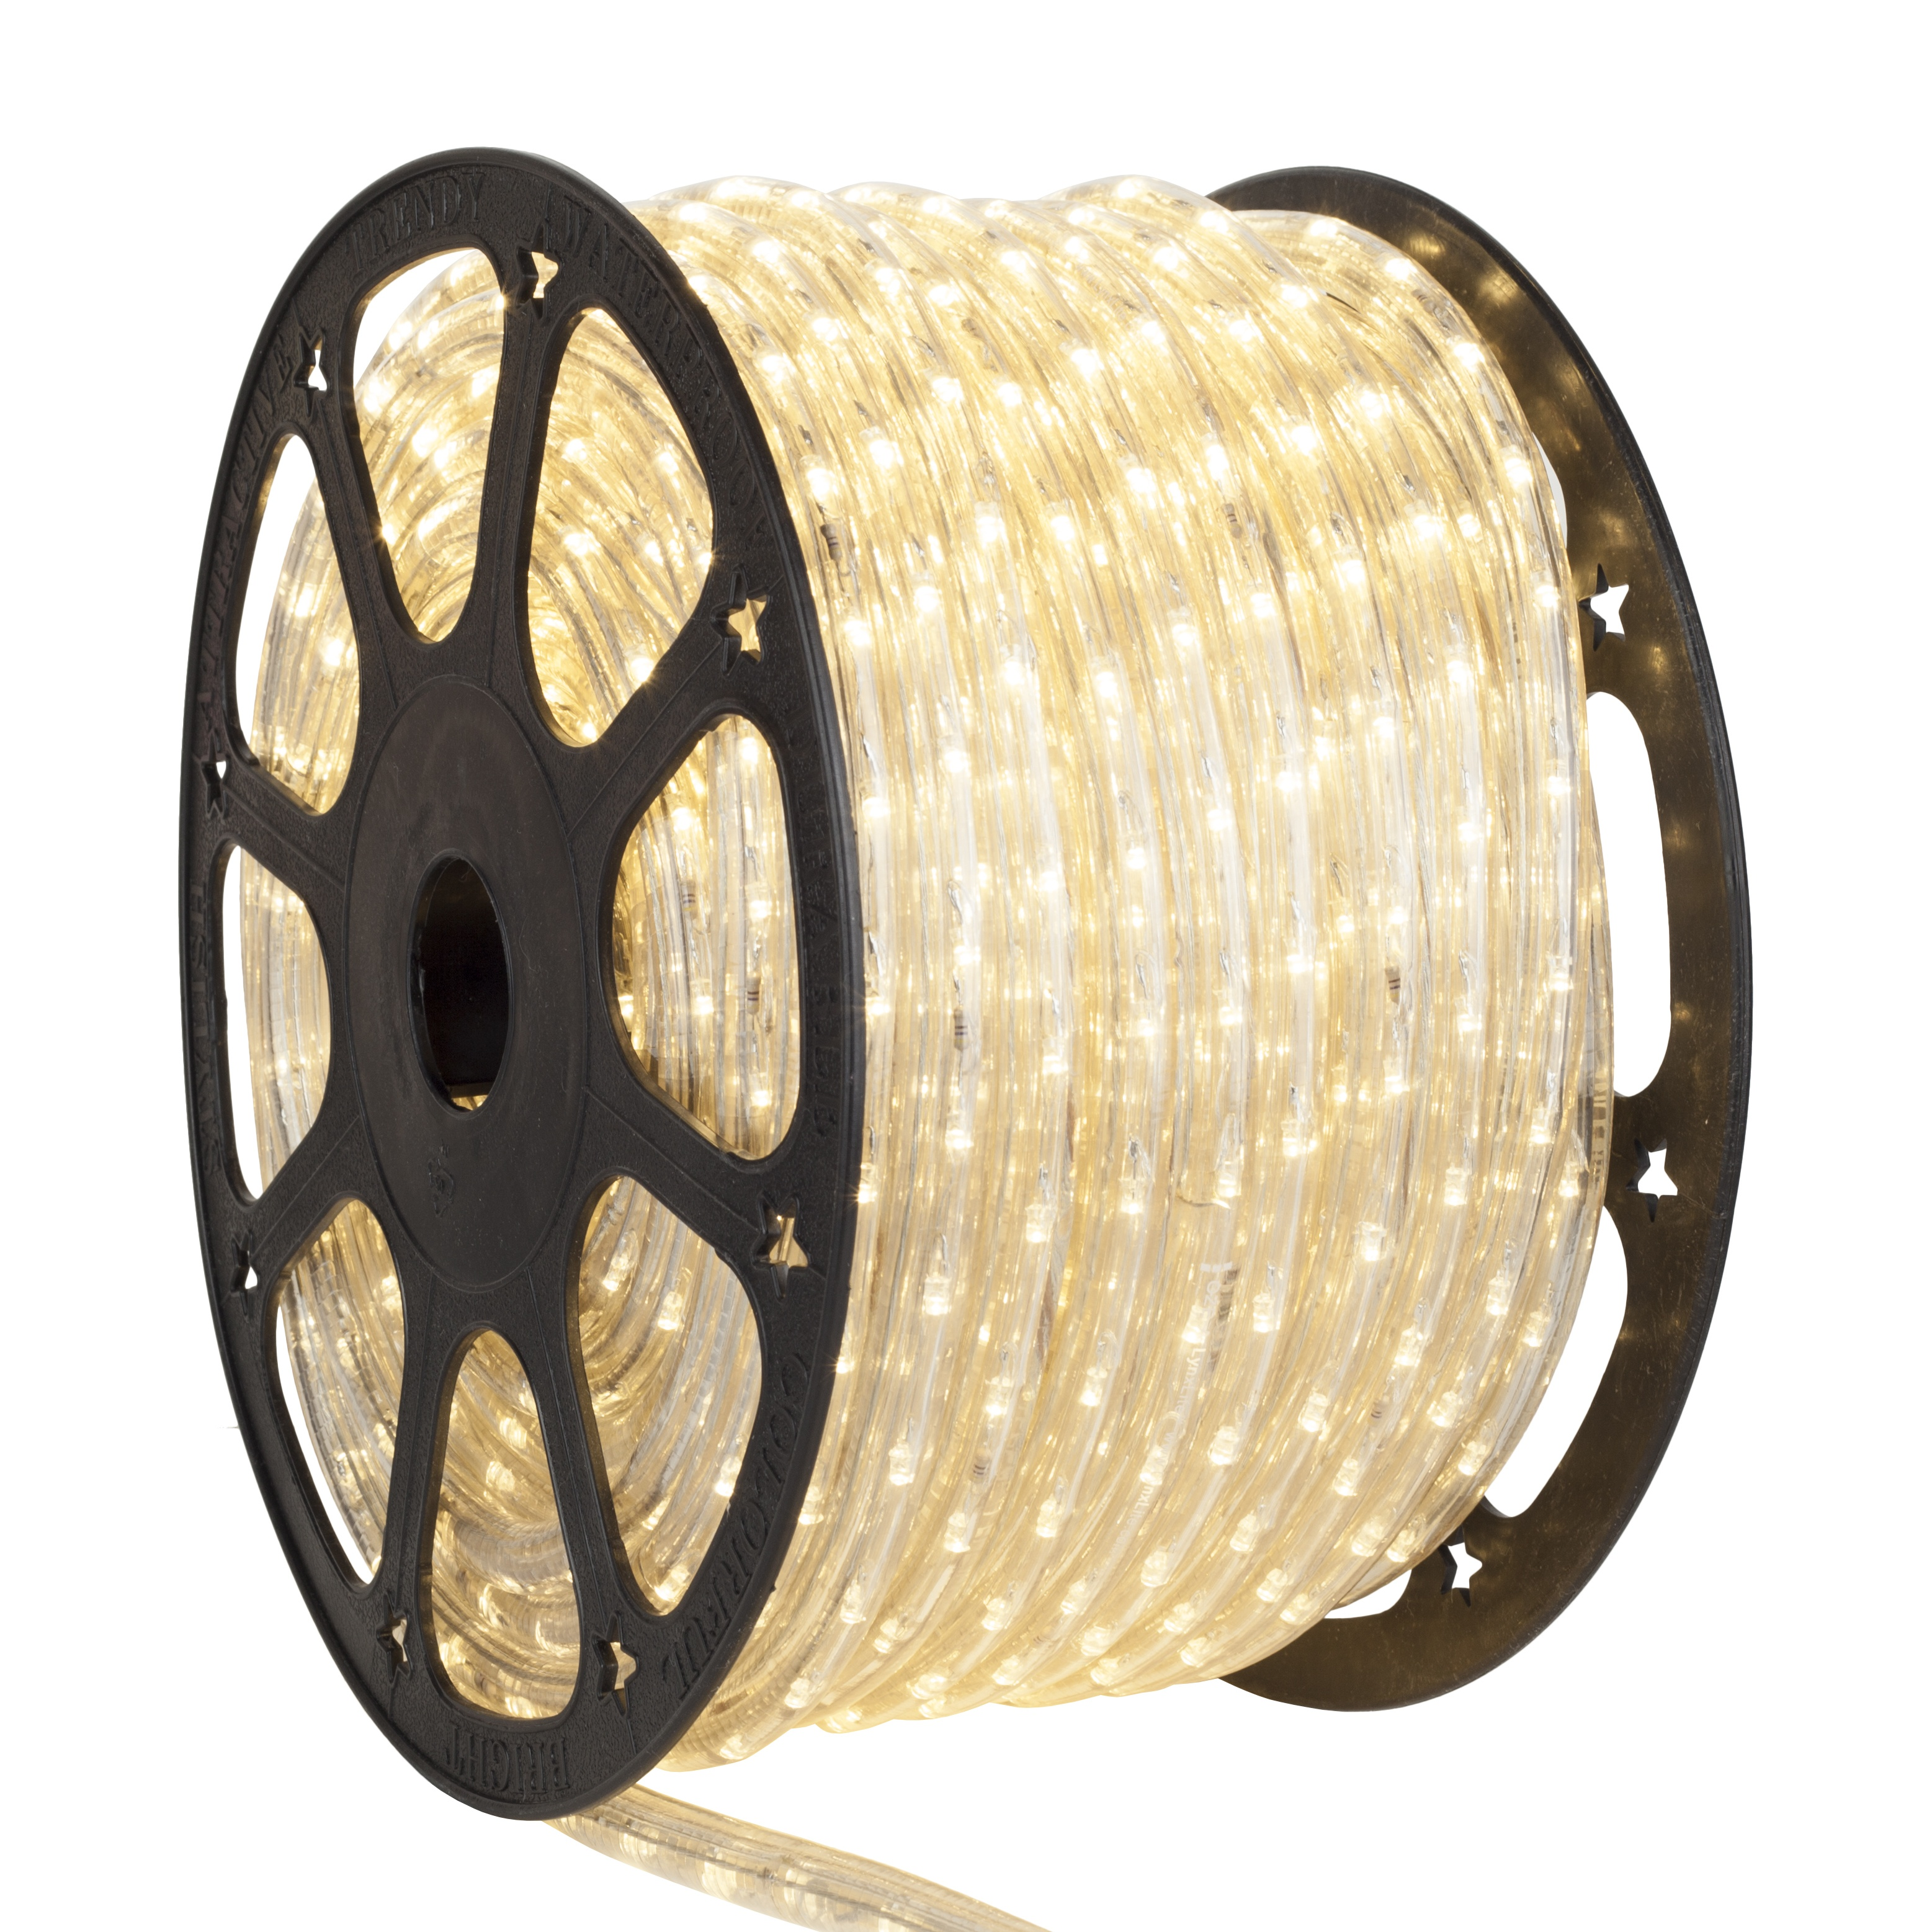 Antique White LED Rope Light Spool